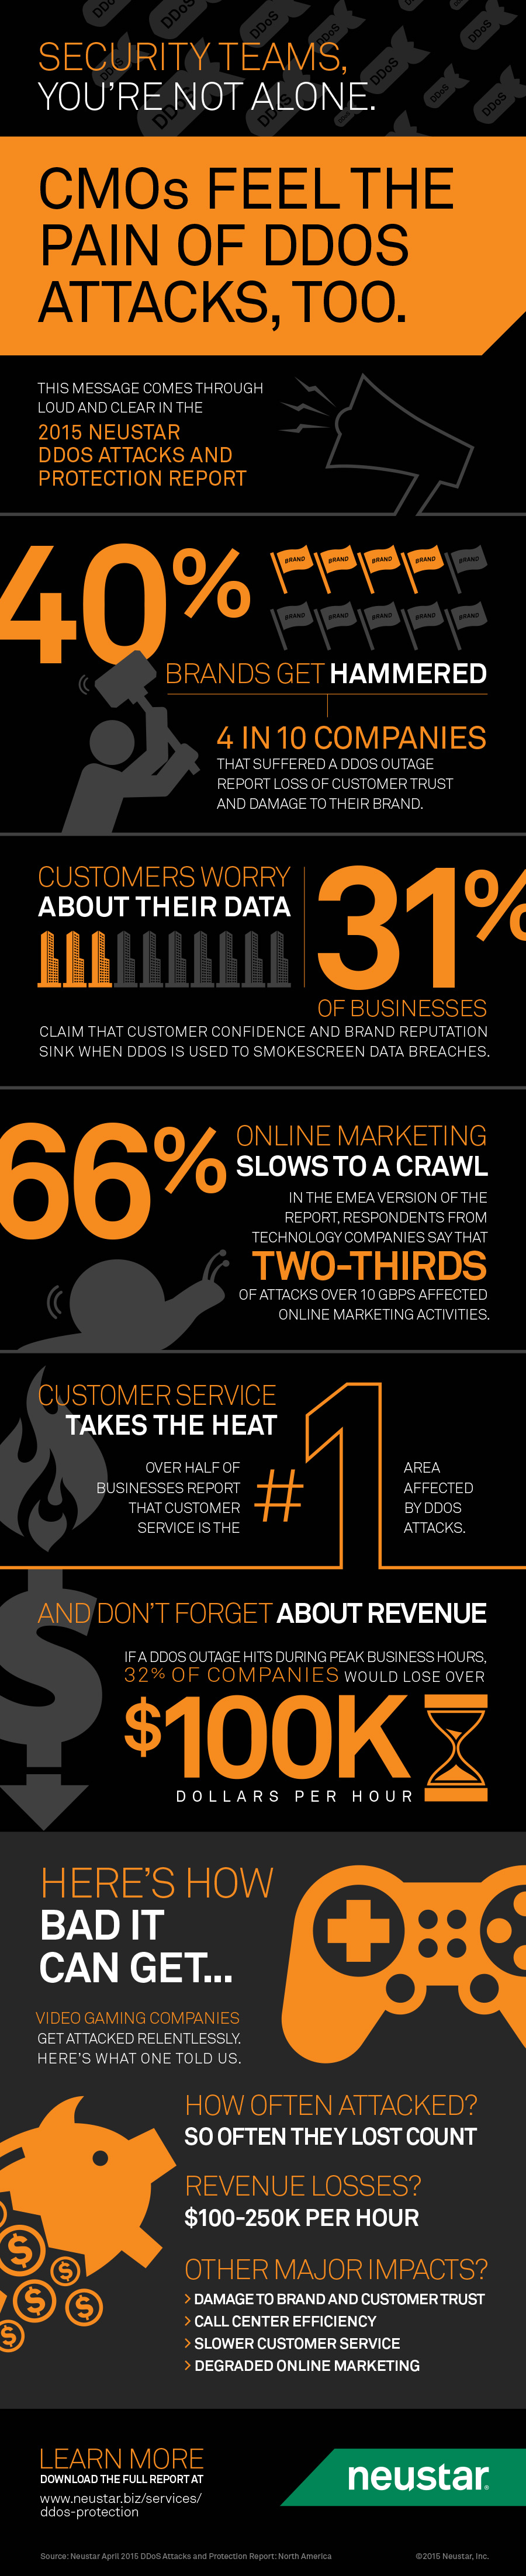 2015 Neustar DDoS Protection Report Infographic